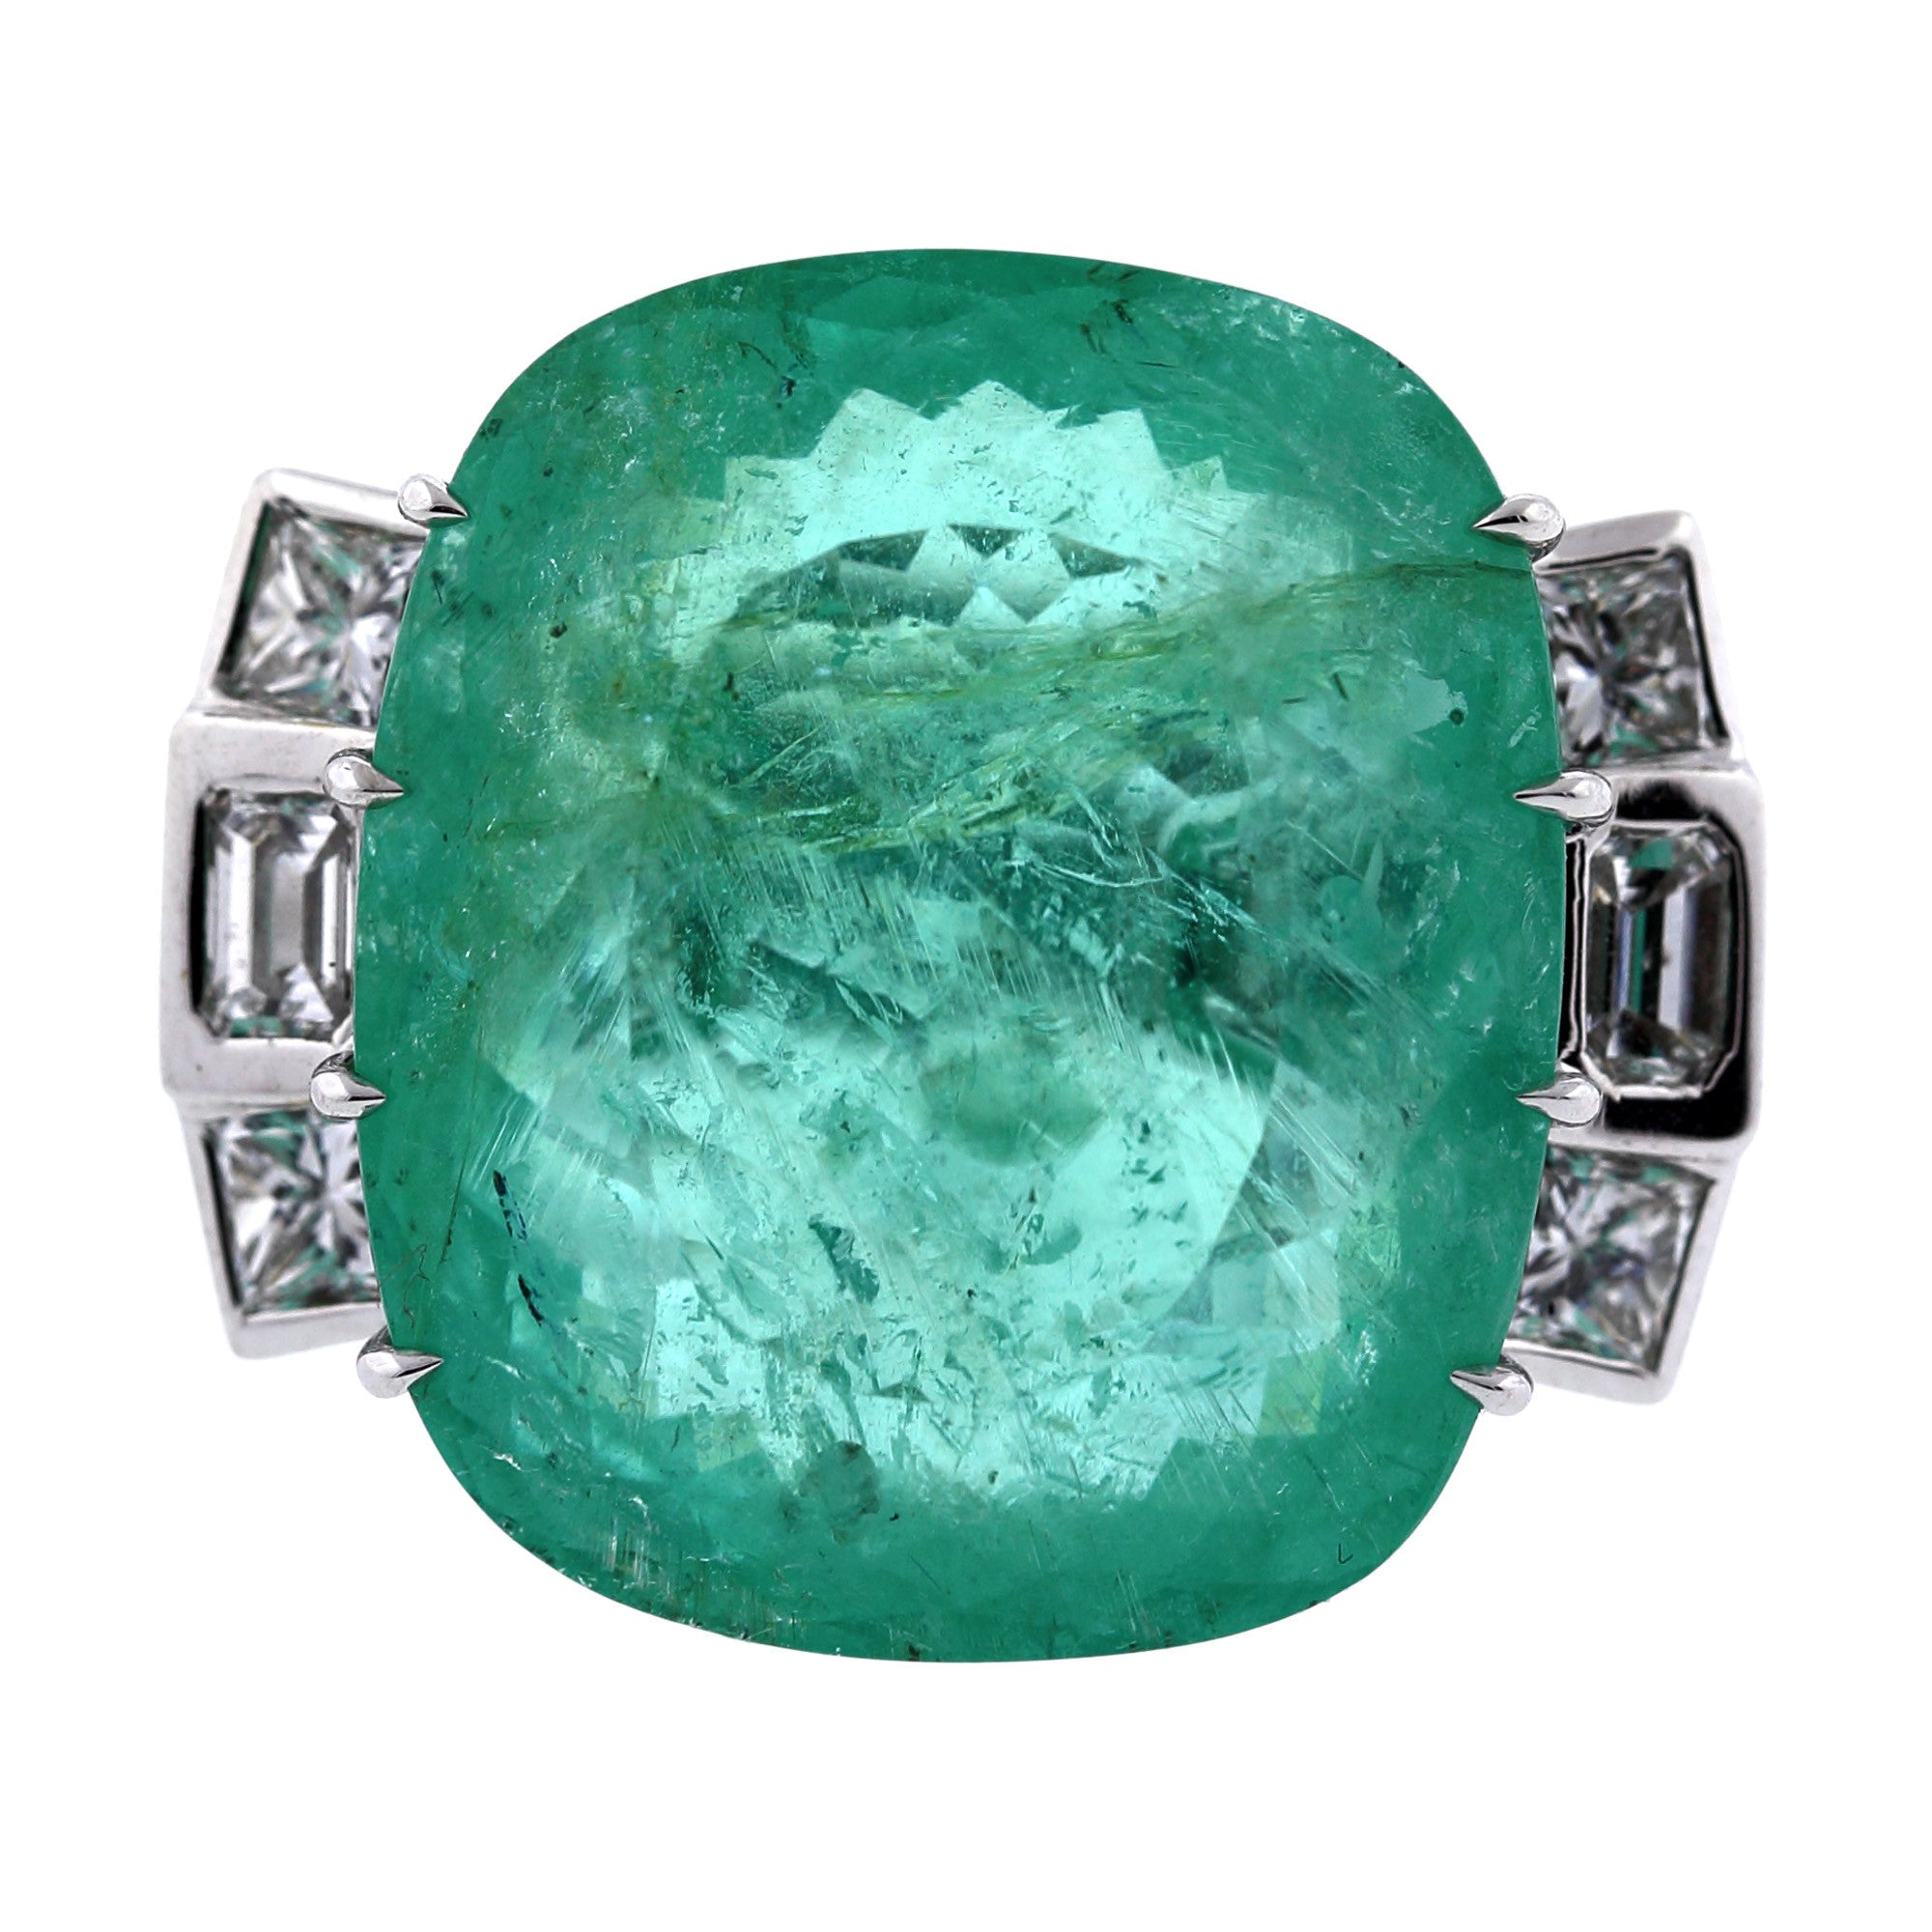 Aviator vii tourmaline ring